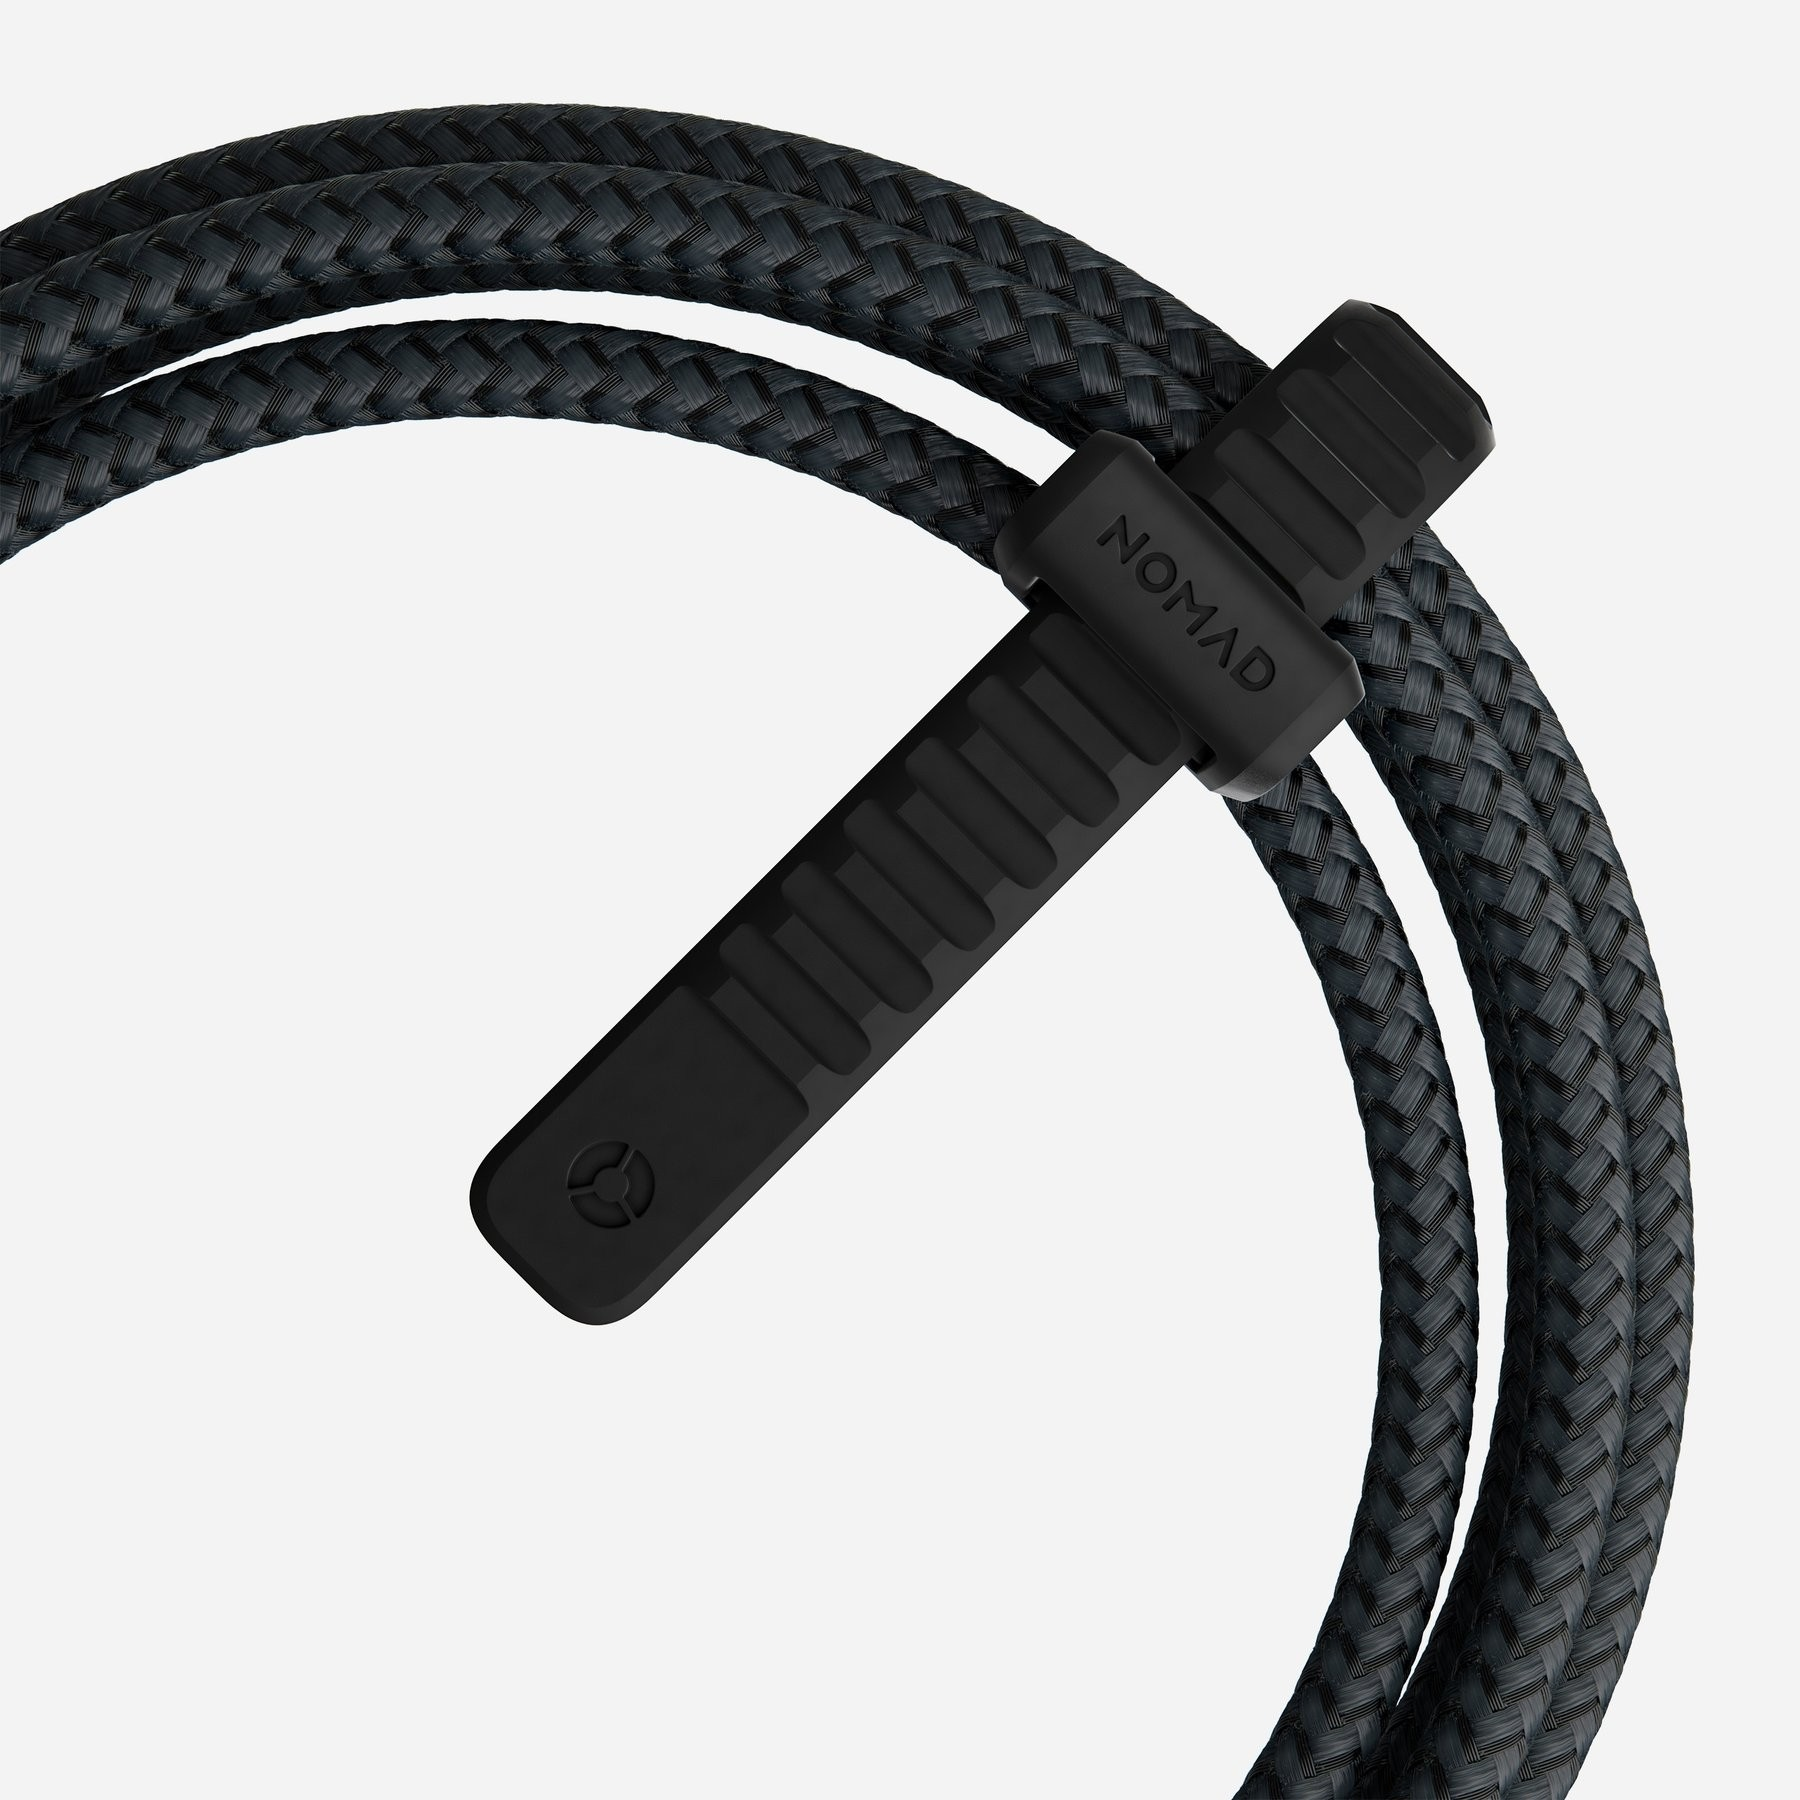 Nomad - USB-C cable with Kevlar, 1.5 m, NM01914000